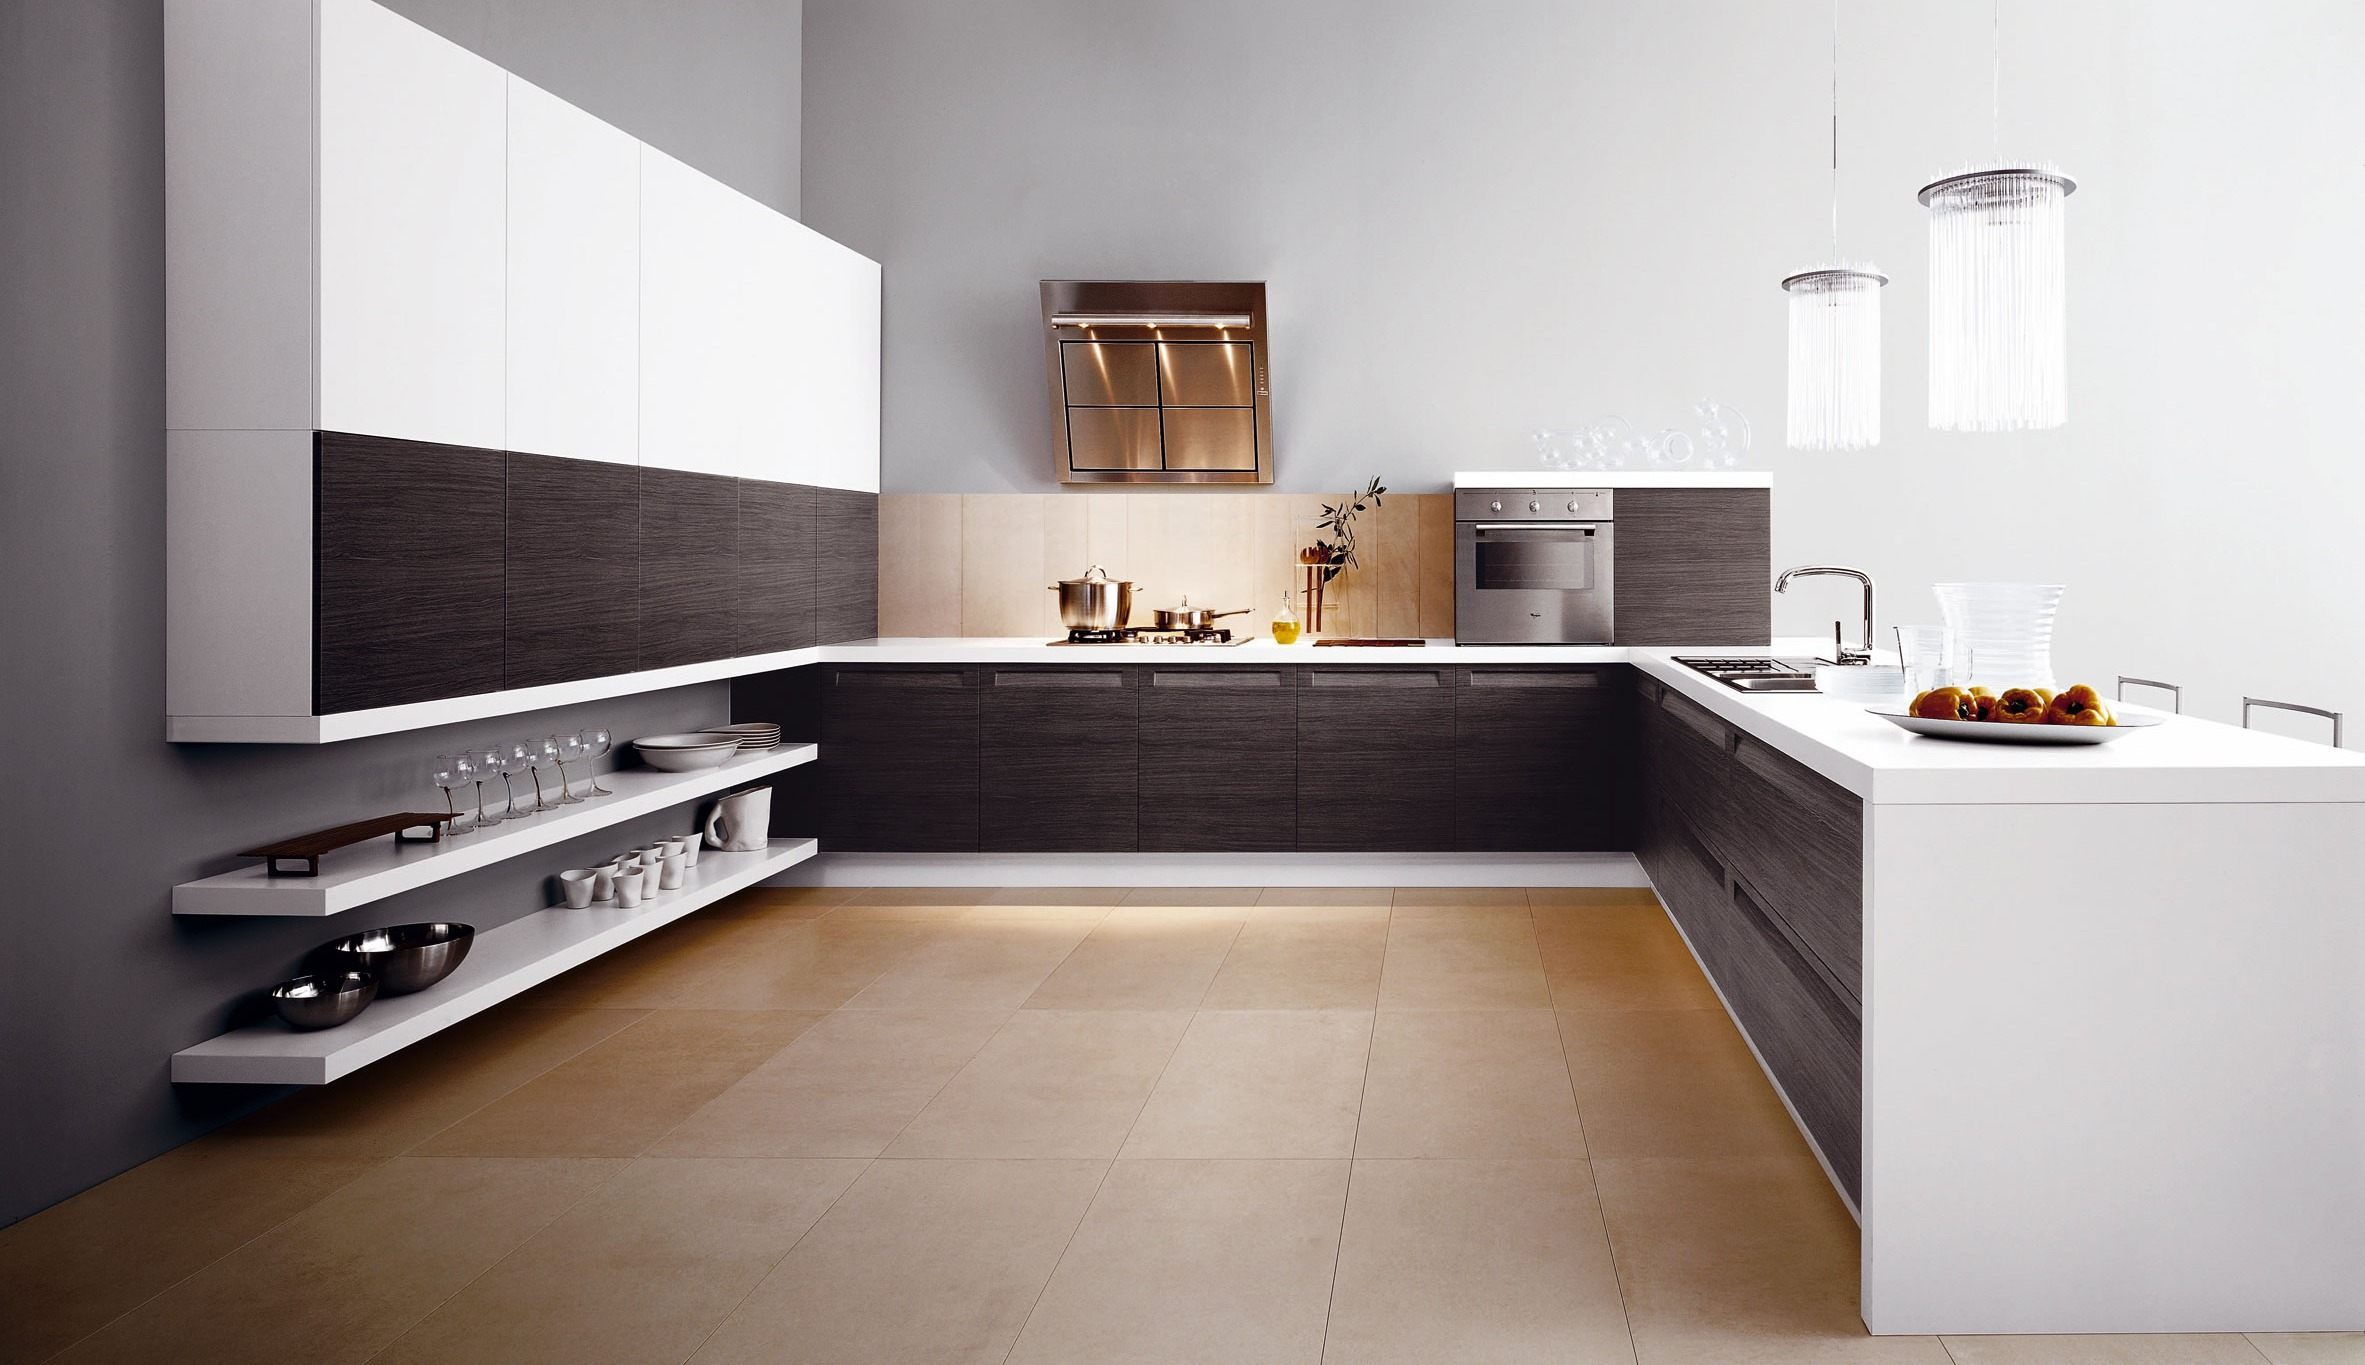 Contemporary Italian Kitchen Floors (View 9 of 10)